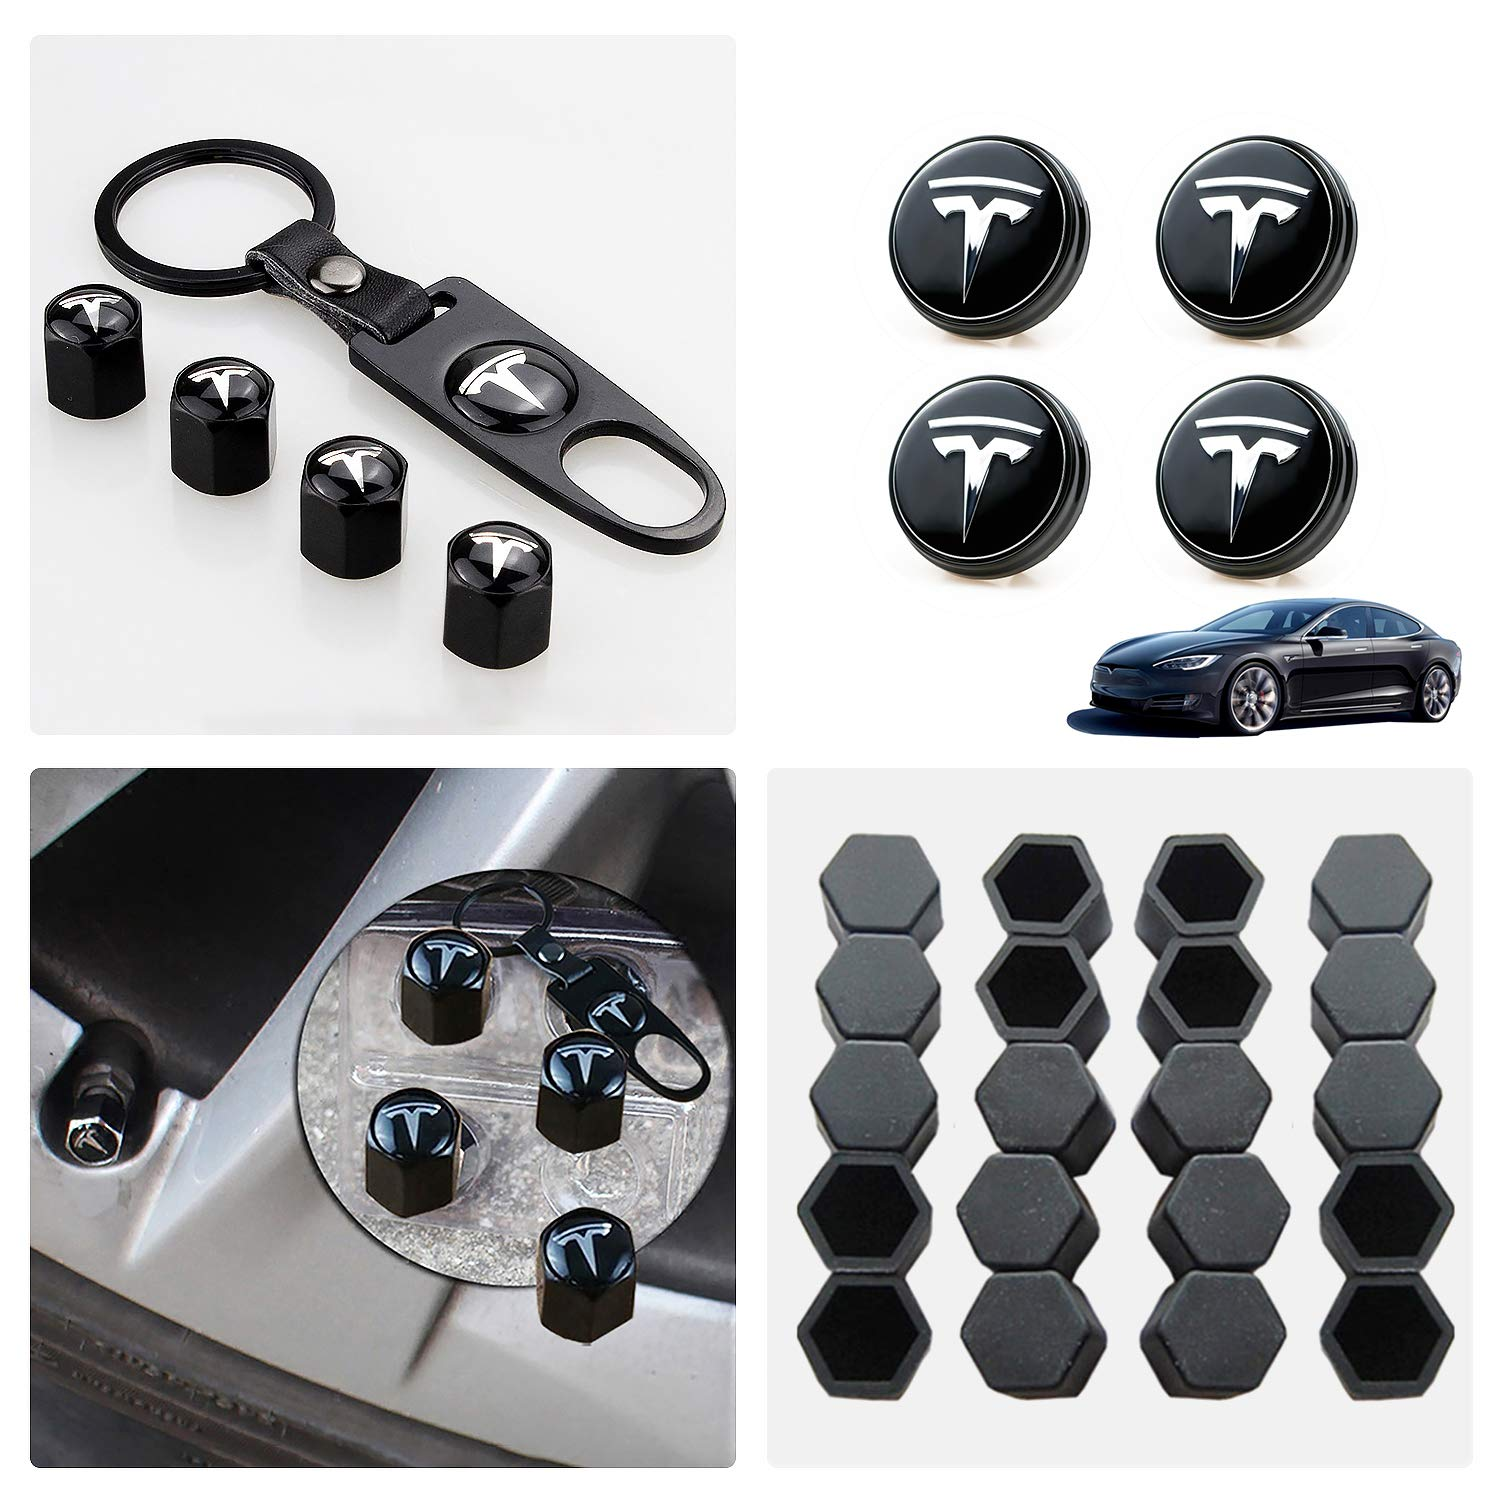 Tesla Model 3 Aero Wheel Cap Kit,Set of 28,Wheel Center Hub Caps Covers with LED Light & Lug Nut Bolt Cover Caps & Tire Valve Cap Cover Logo Styling Combined Package,Blue Light by LFOTPP